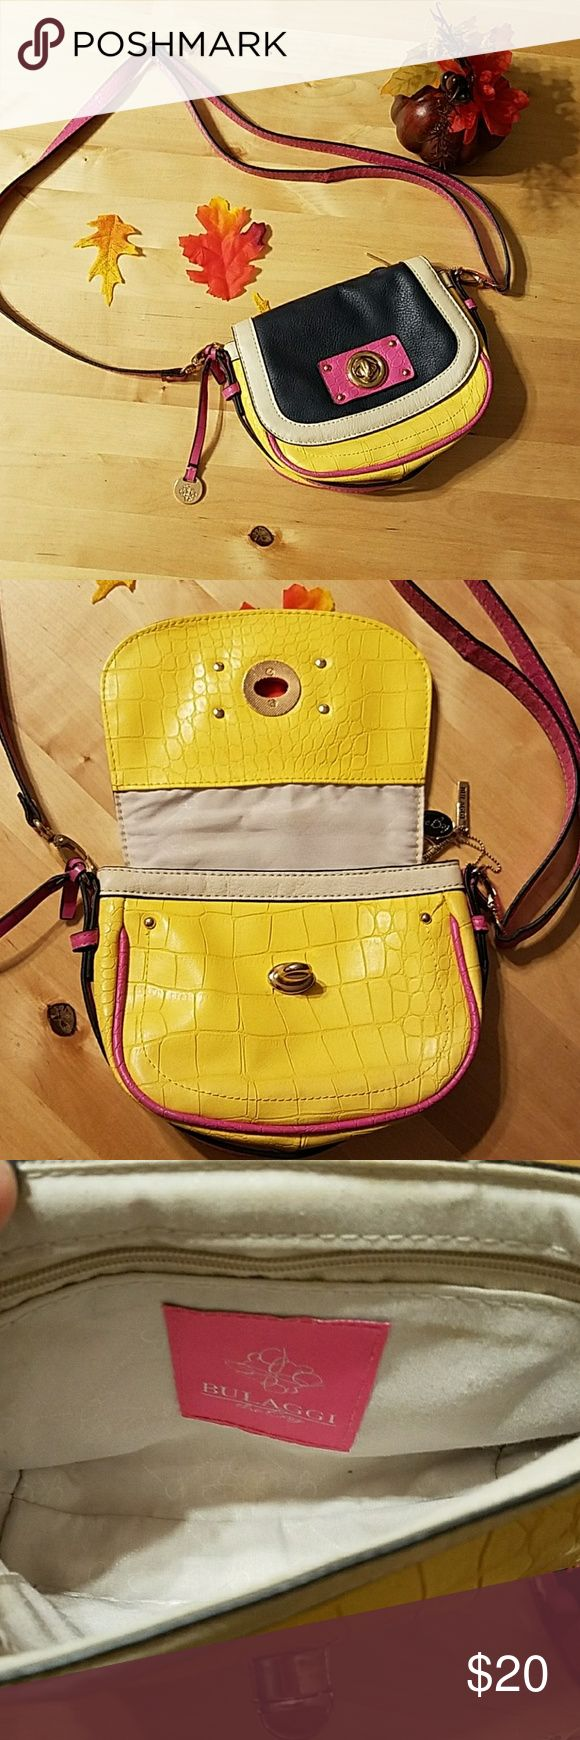 """Bulaggi crossbody Bulaggi crossbody, great colors. 7""""×6""""×2"""" with 24"""" adjustable drop strap. This has a few scuffs from being loved but still has so much to offer. Bulaggi Bags Crossbody Bags"""